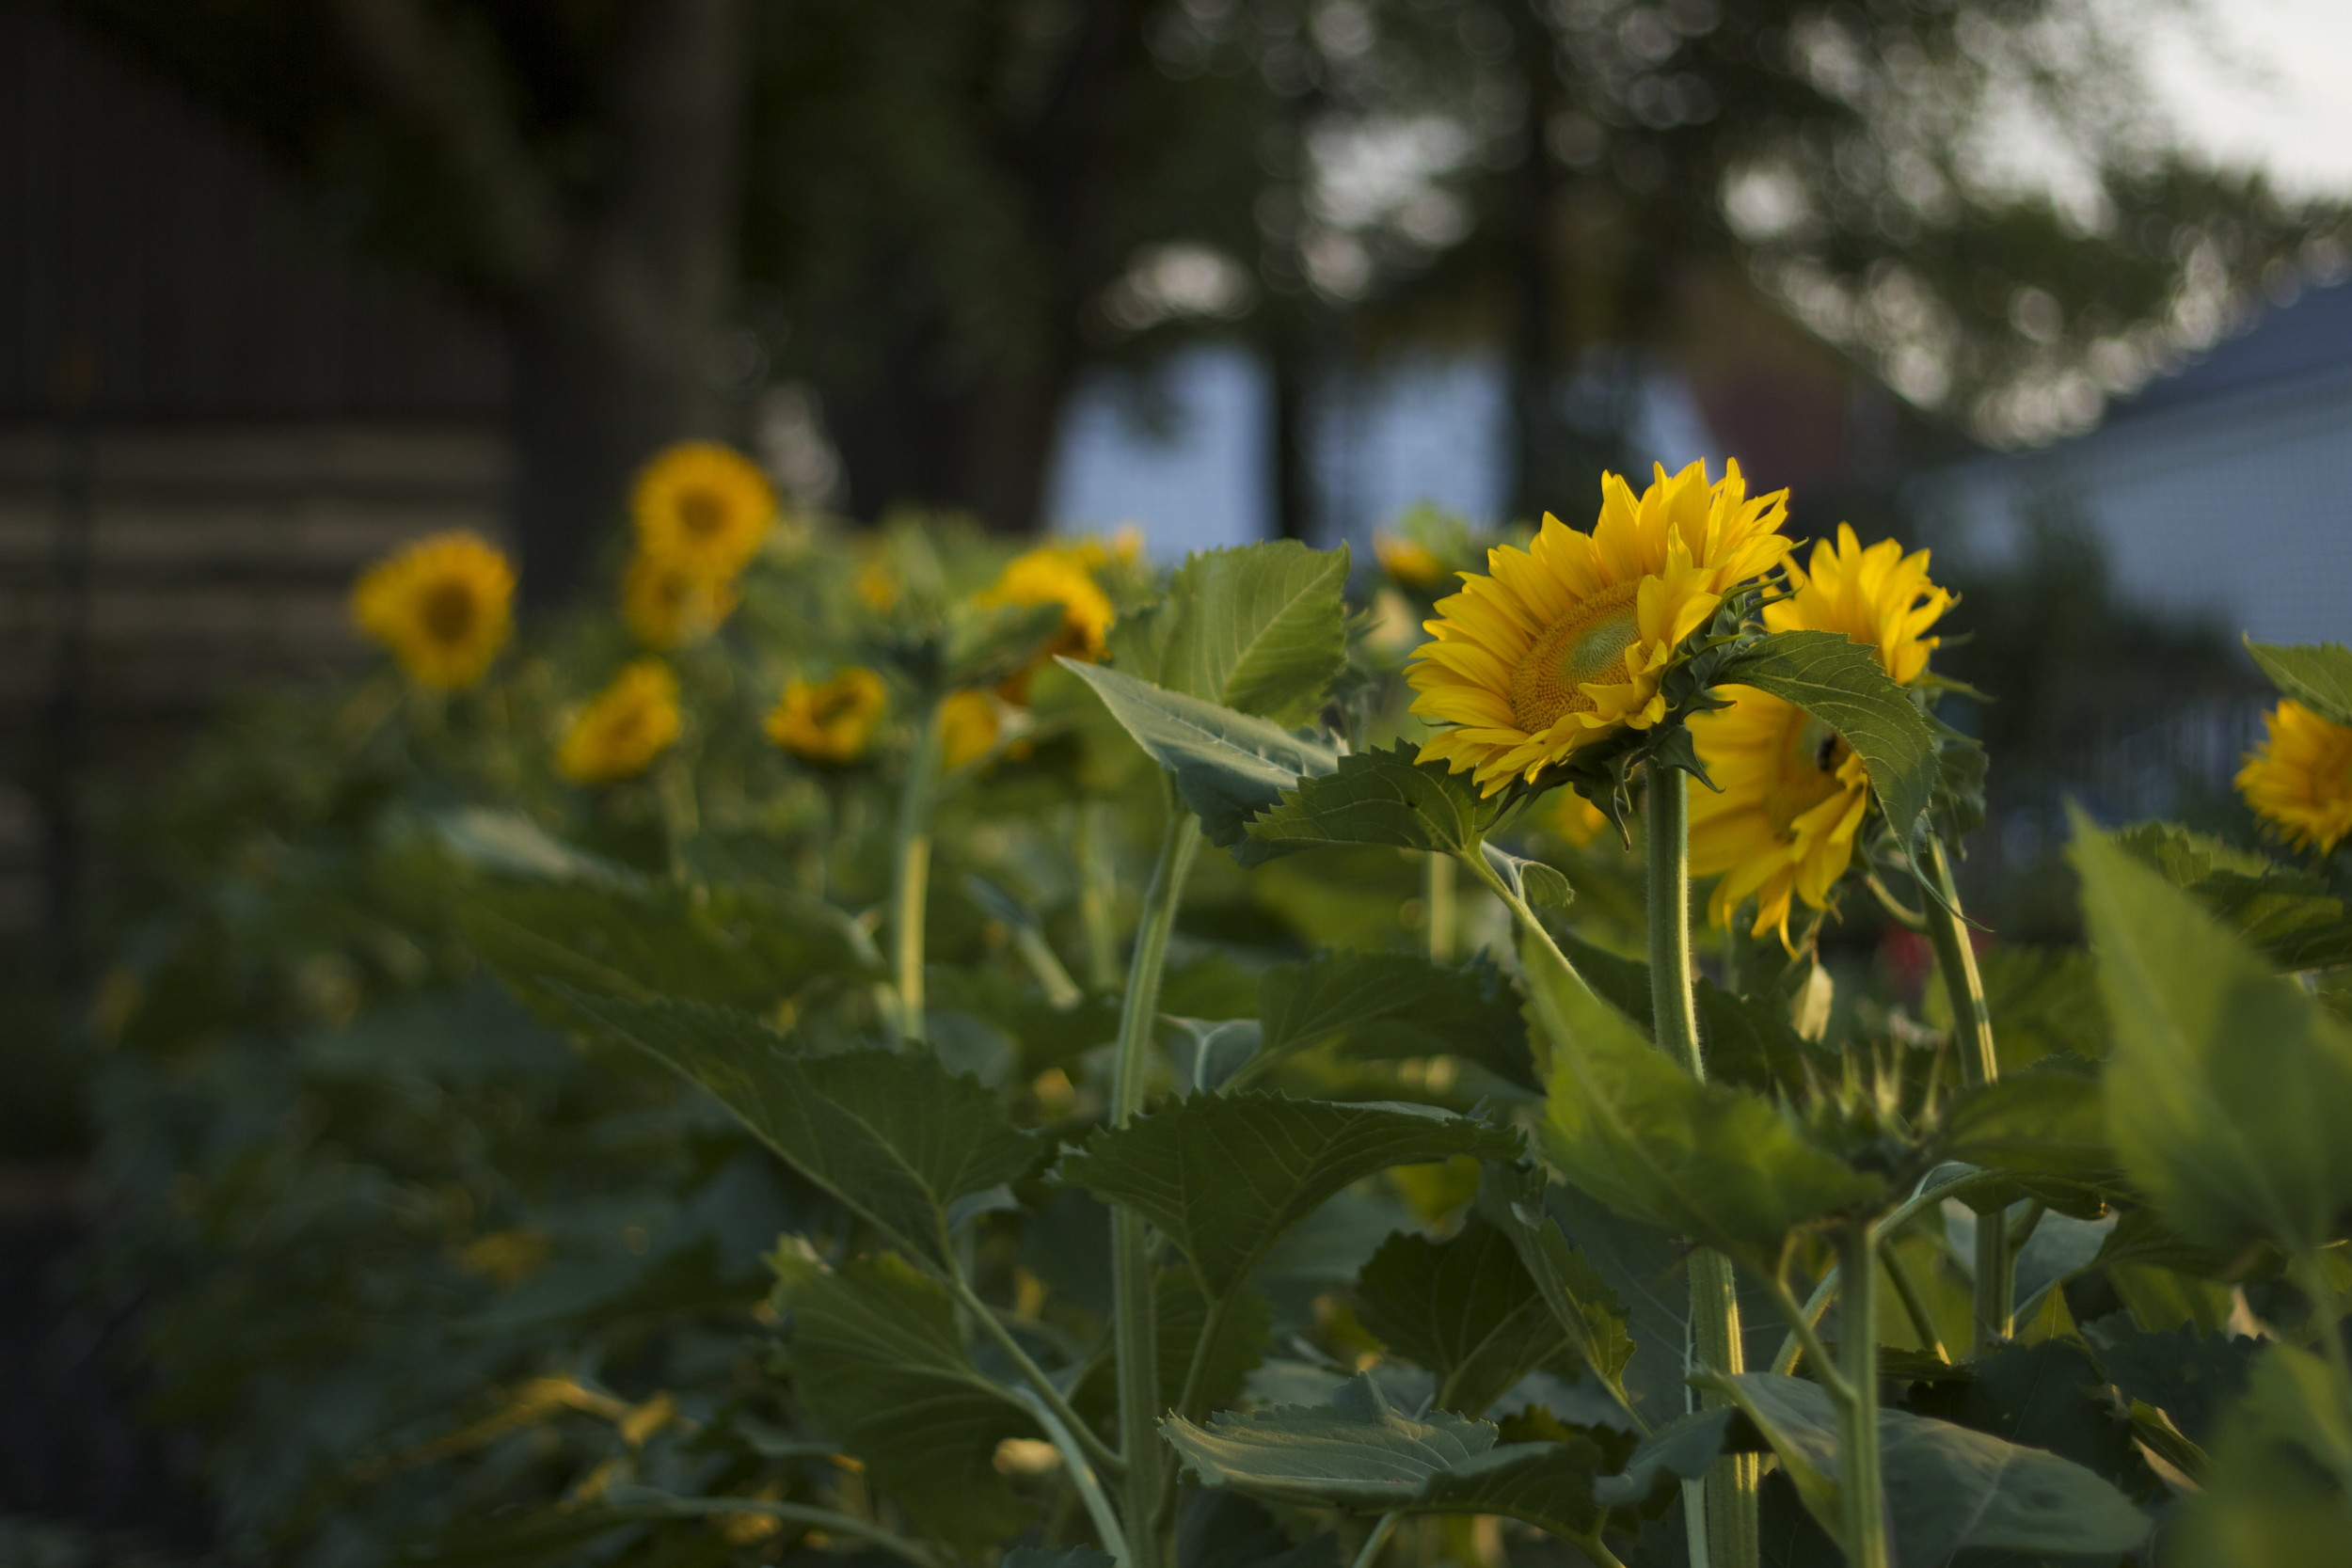 I have a new appreciation for sunflowers after watching them stretch towards the sun all summer